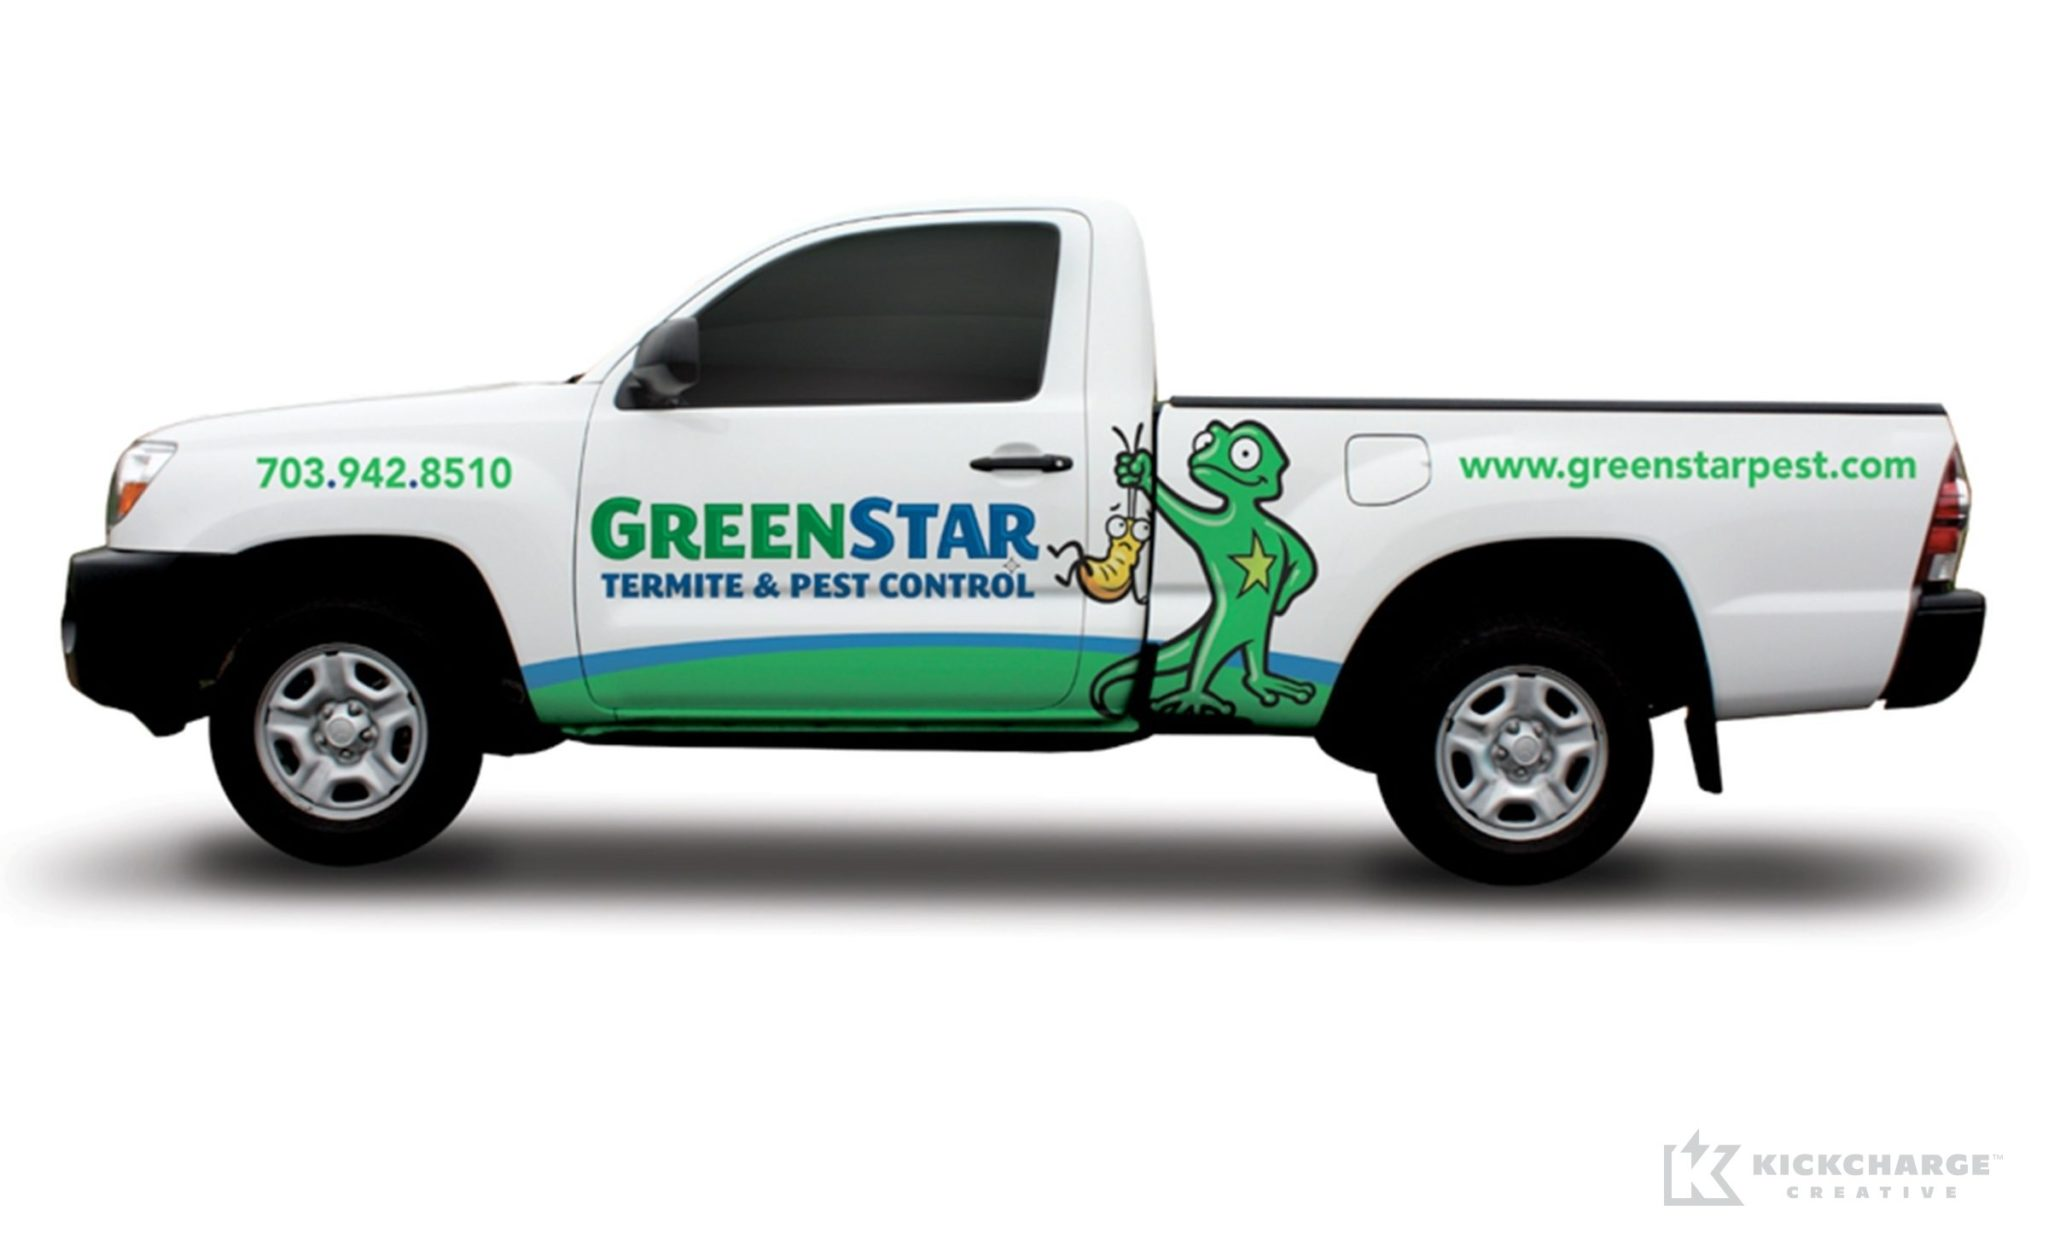 Vehicle wrap design for GreenStar Pest Control.